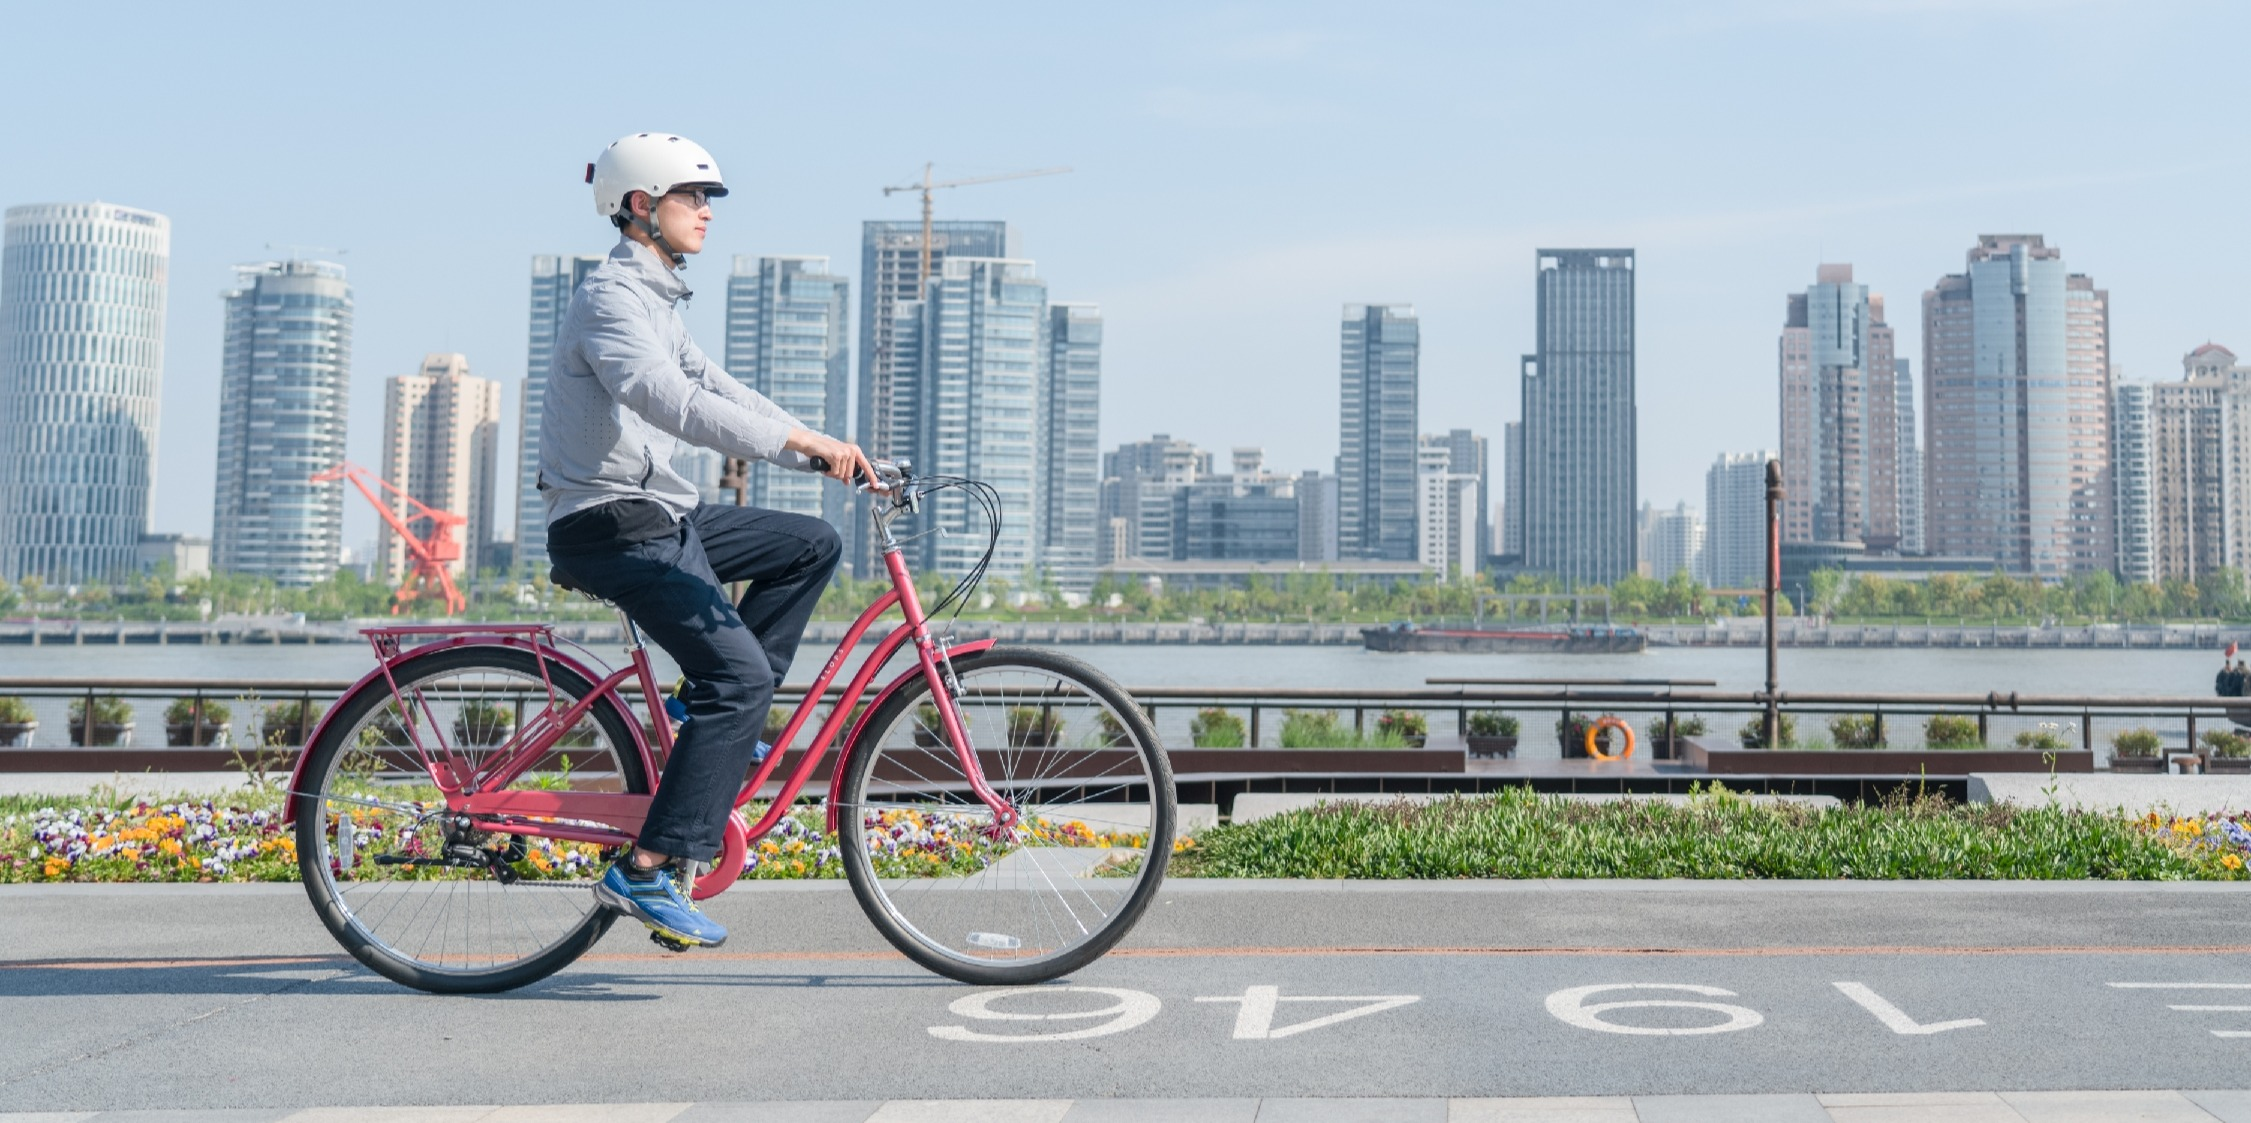 How To Cycle In Urban Areas As A Beginner